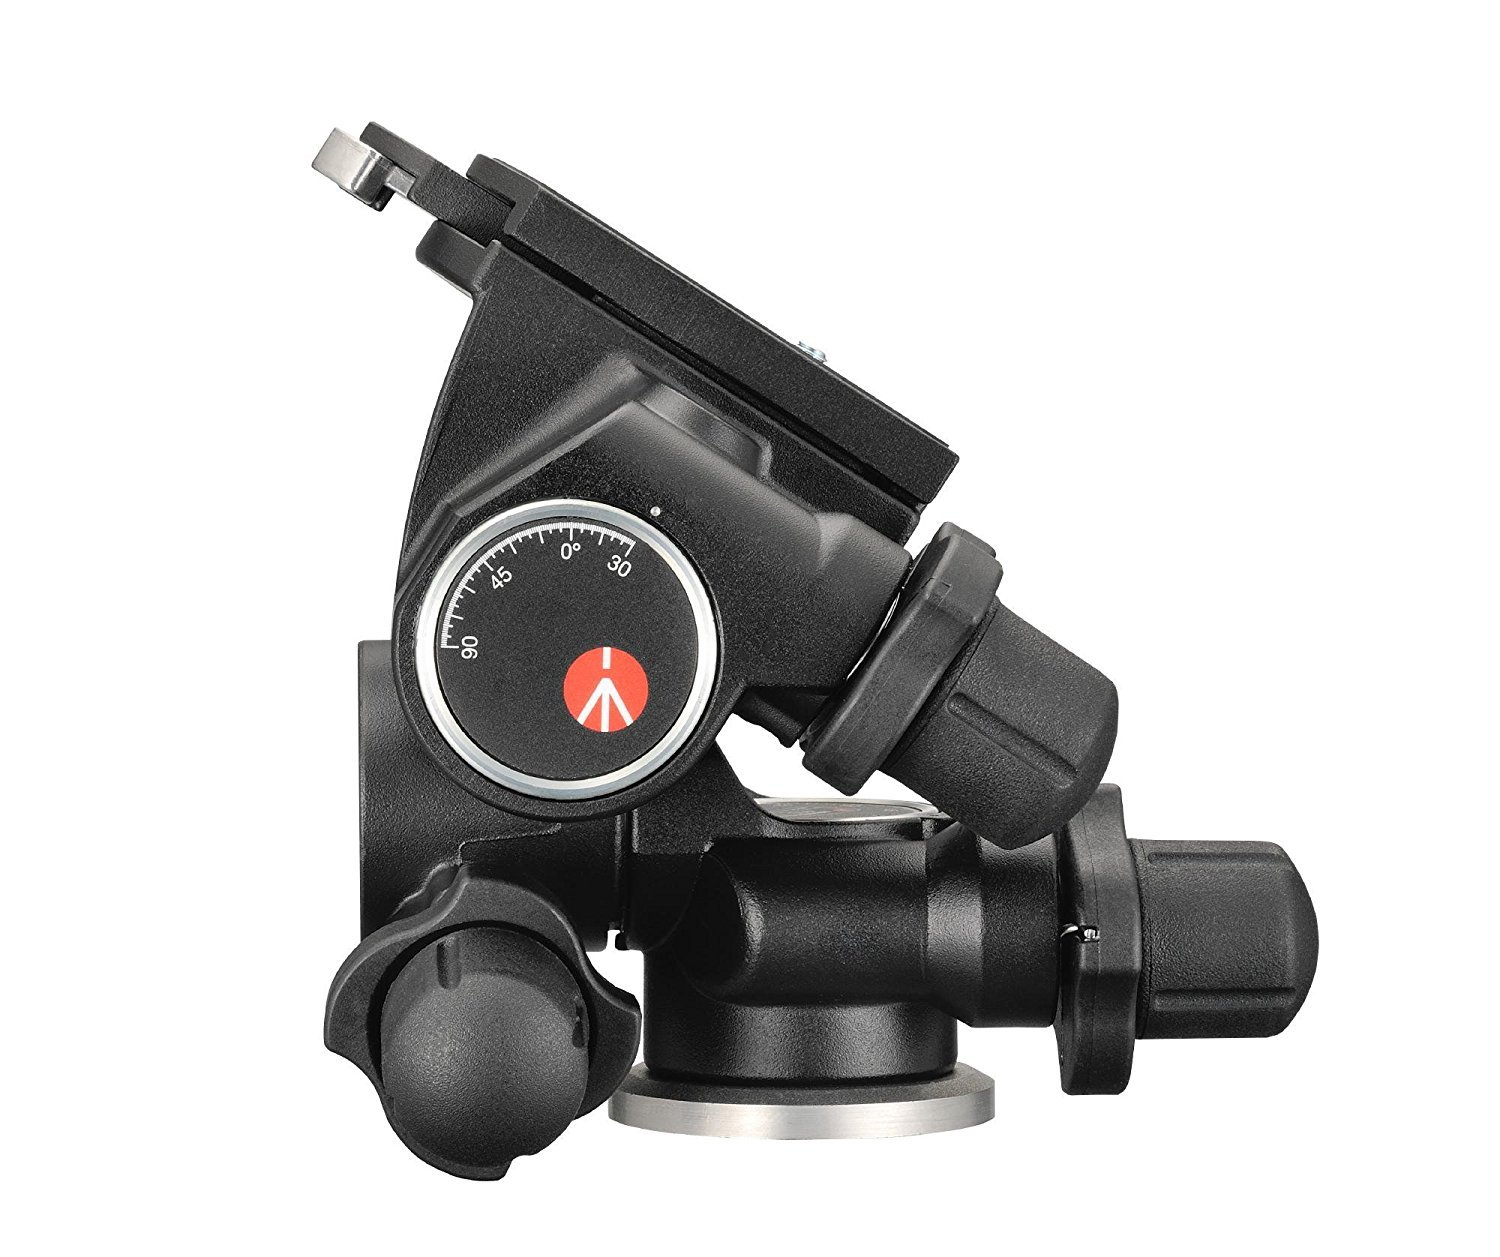 Manfrotto 410 Junior Geared Tripod Head with Quick Release and a Bonus Ivation Quick Release Plate by Manfrotto (Image #3)